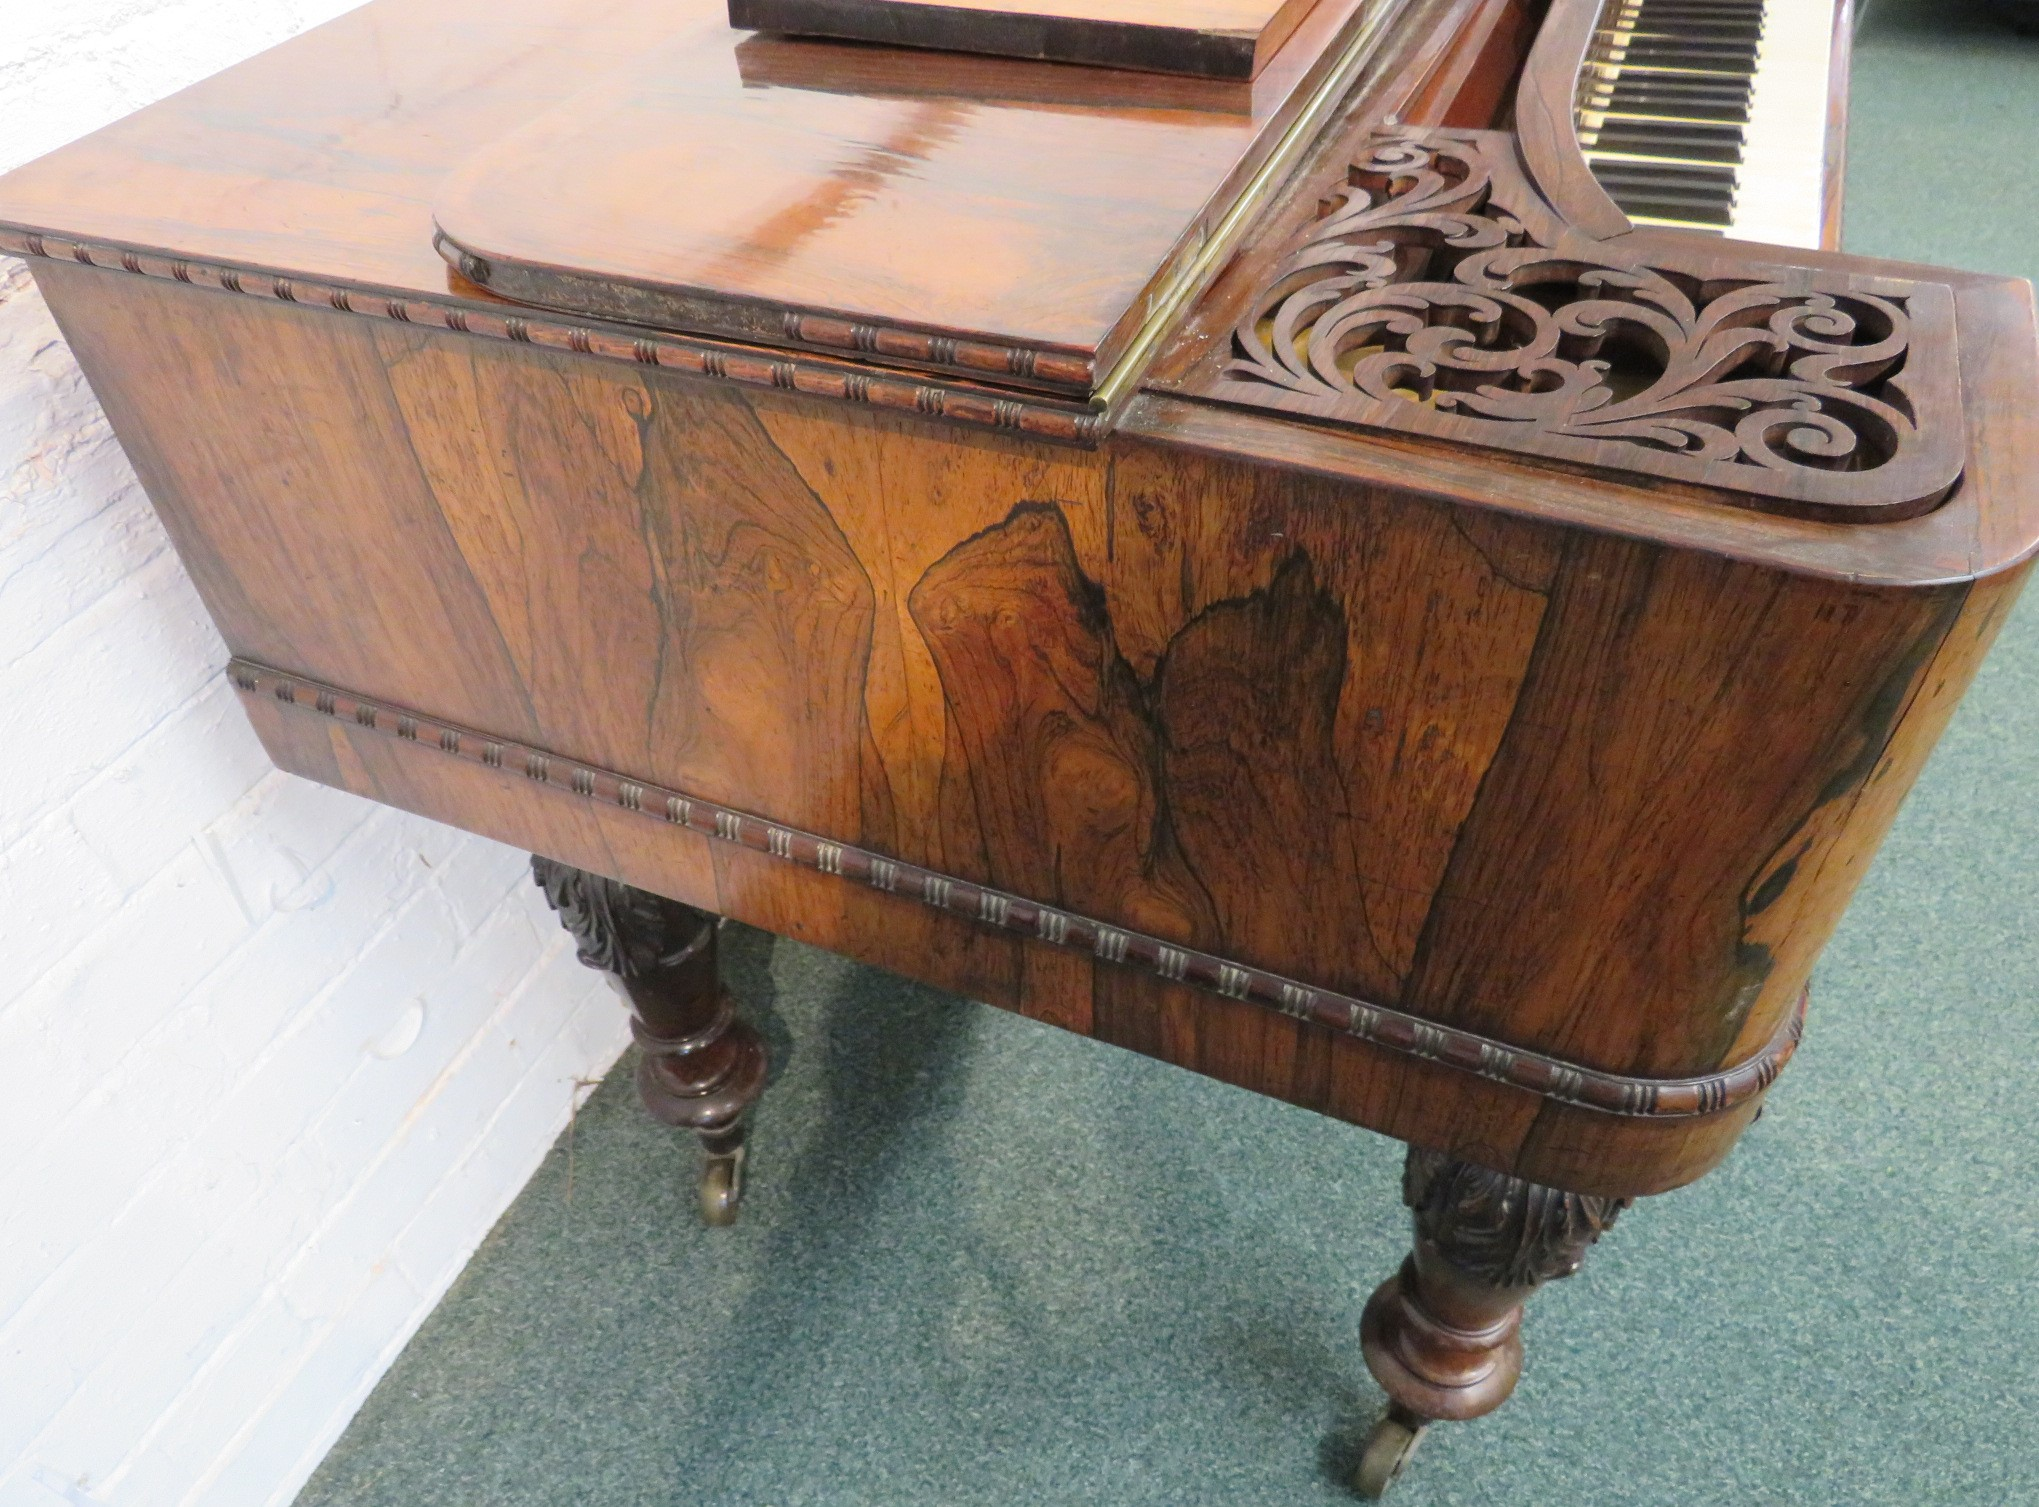 Lot 172 - Collard and Collard mahogany and rosewood square piano, bearing gilded label 'PATENT COLLARD &